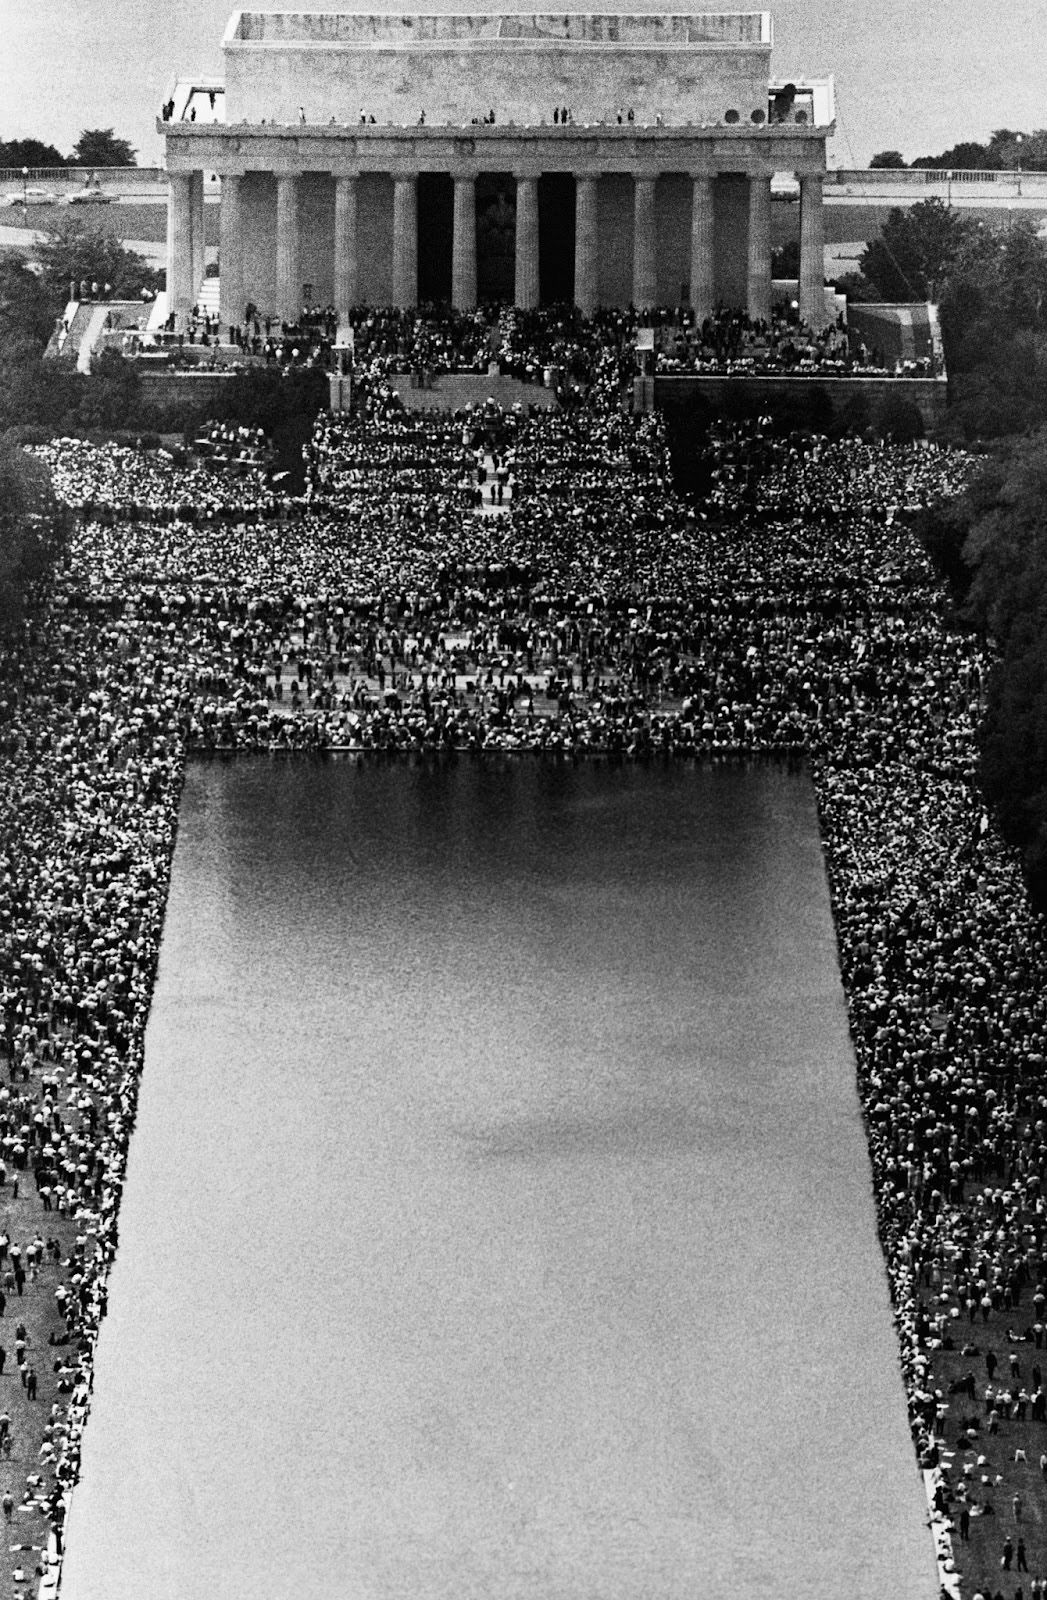 Civil Rights March on Washington - If you haven't read Reverend Martin Luther King Jr.'s speeches, go do it.